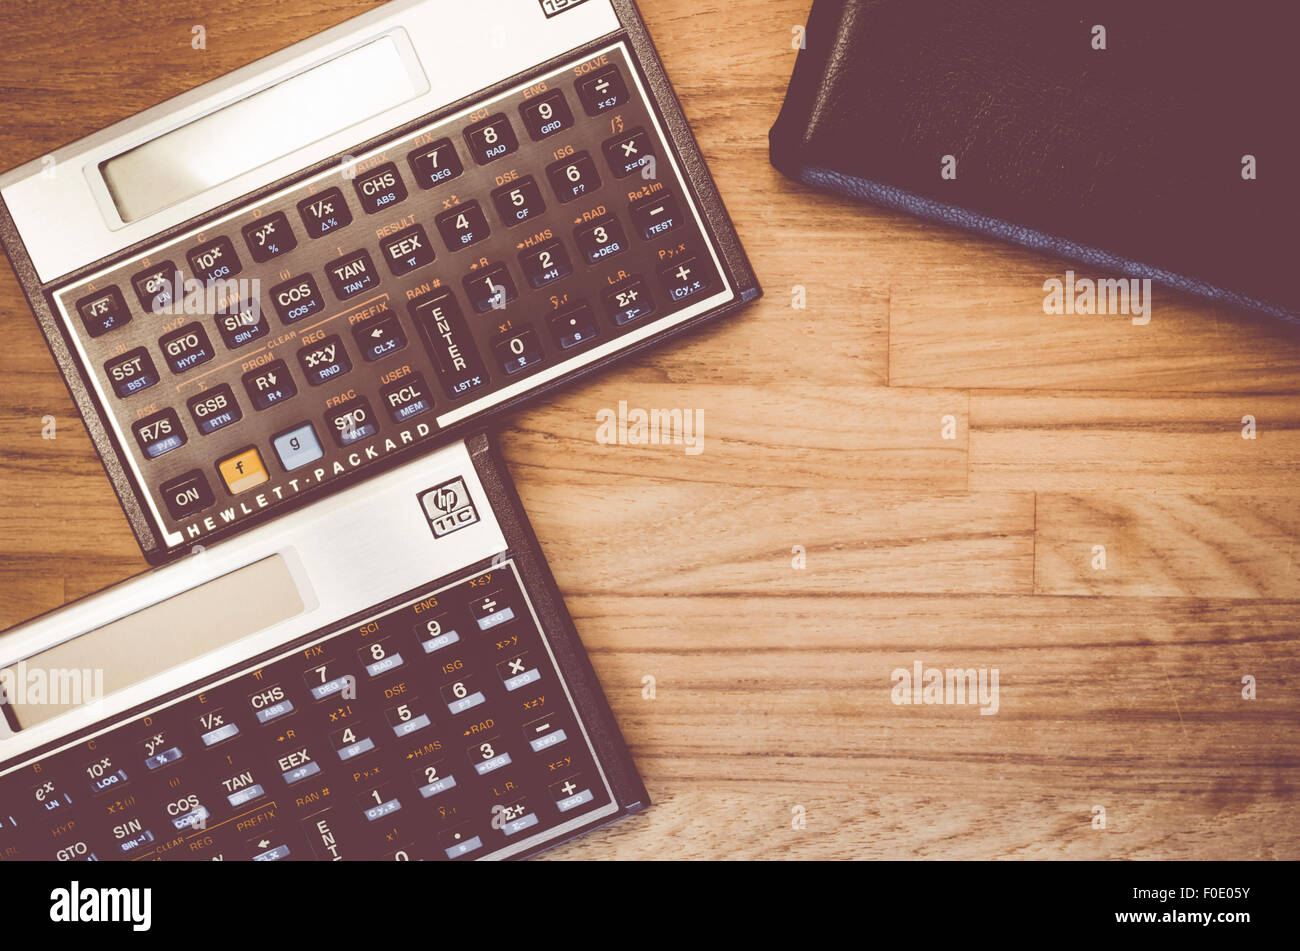 HP-15C and HP 11C programmable scientific calculator made by